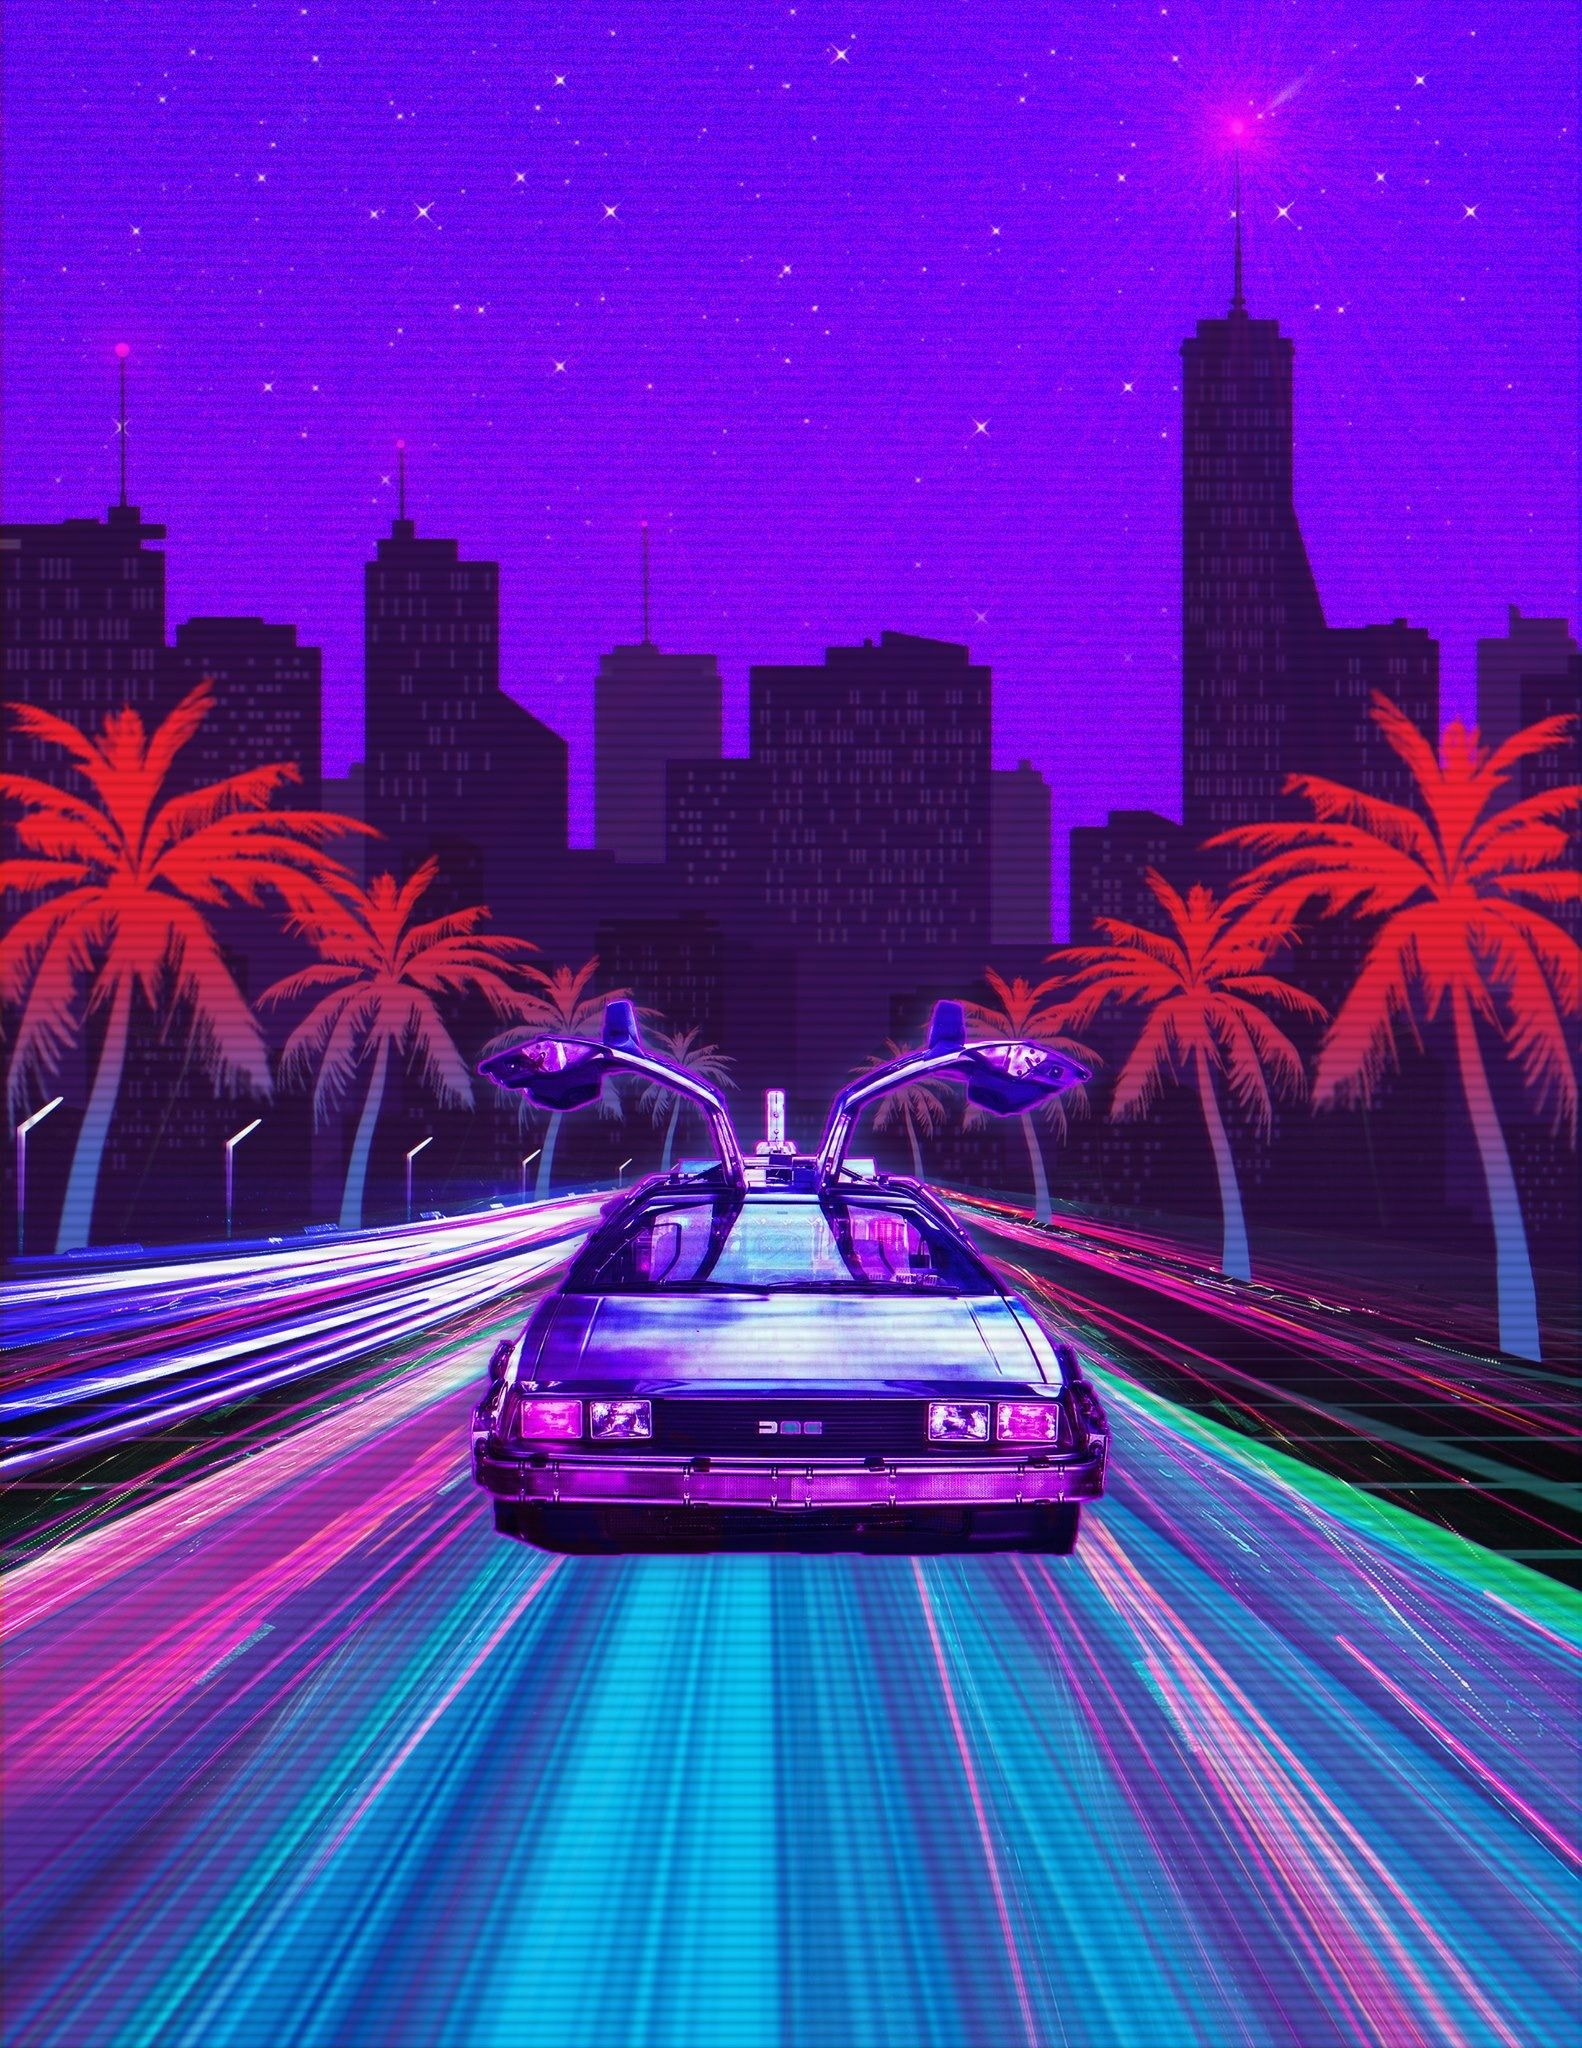 Pin by Ana Neeley on 80s and Dragons Cyberpunk aesthetic